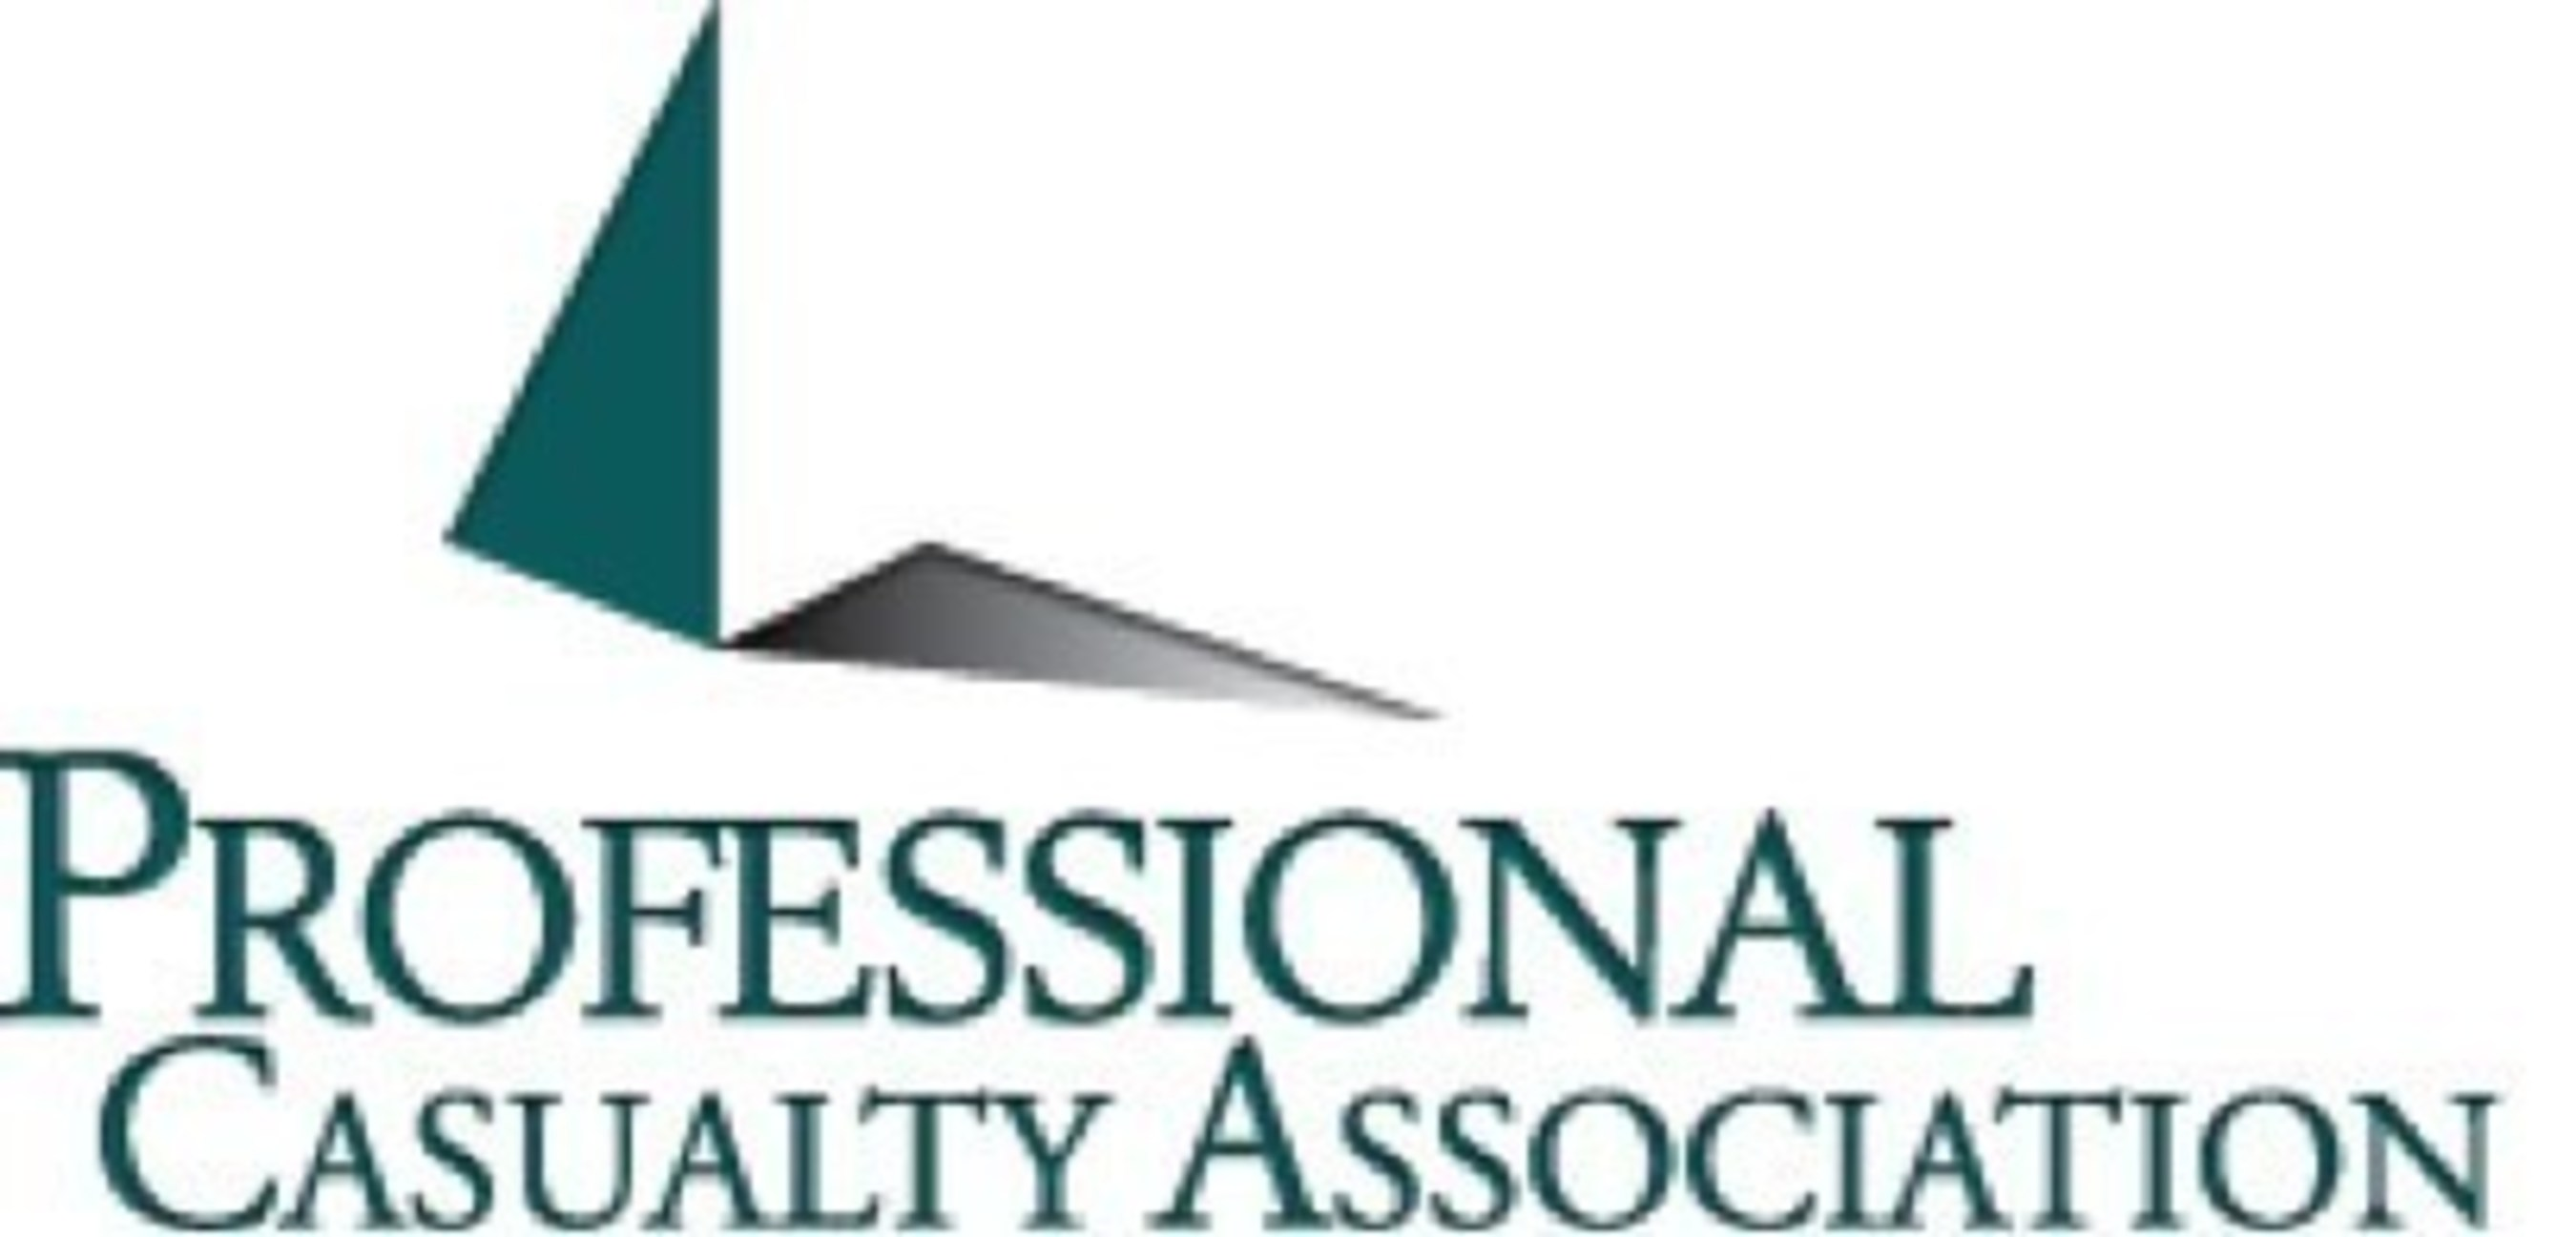 Renowned Professional Casualty Association (PCA), a Medical Professional Liability Company,